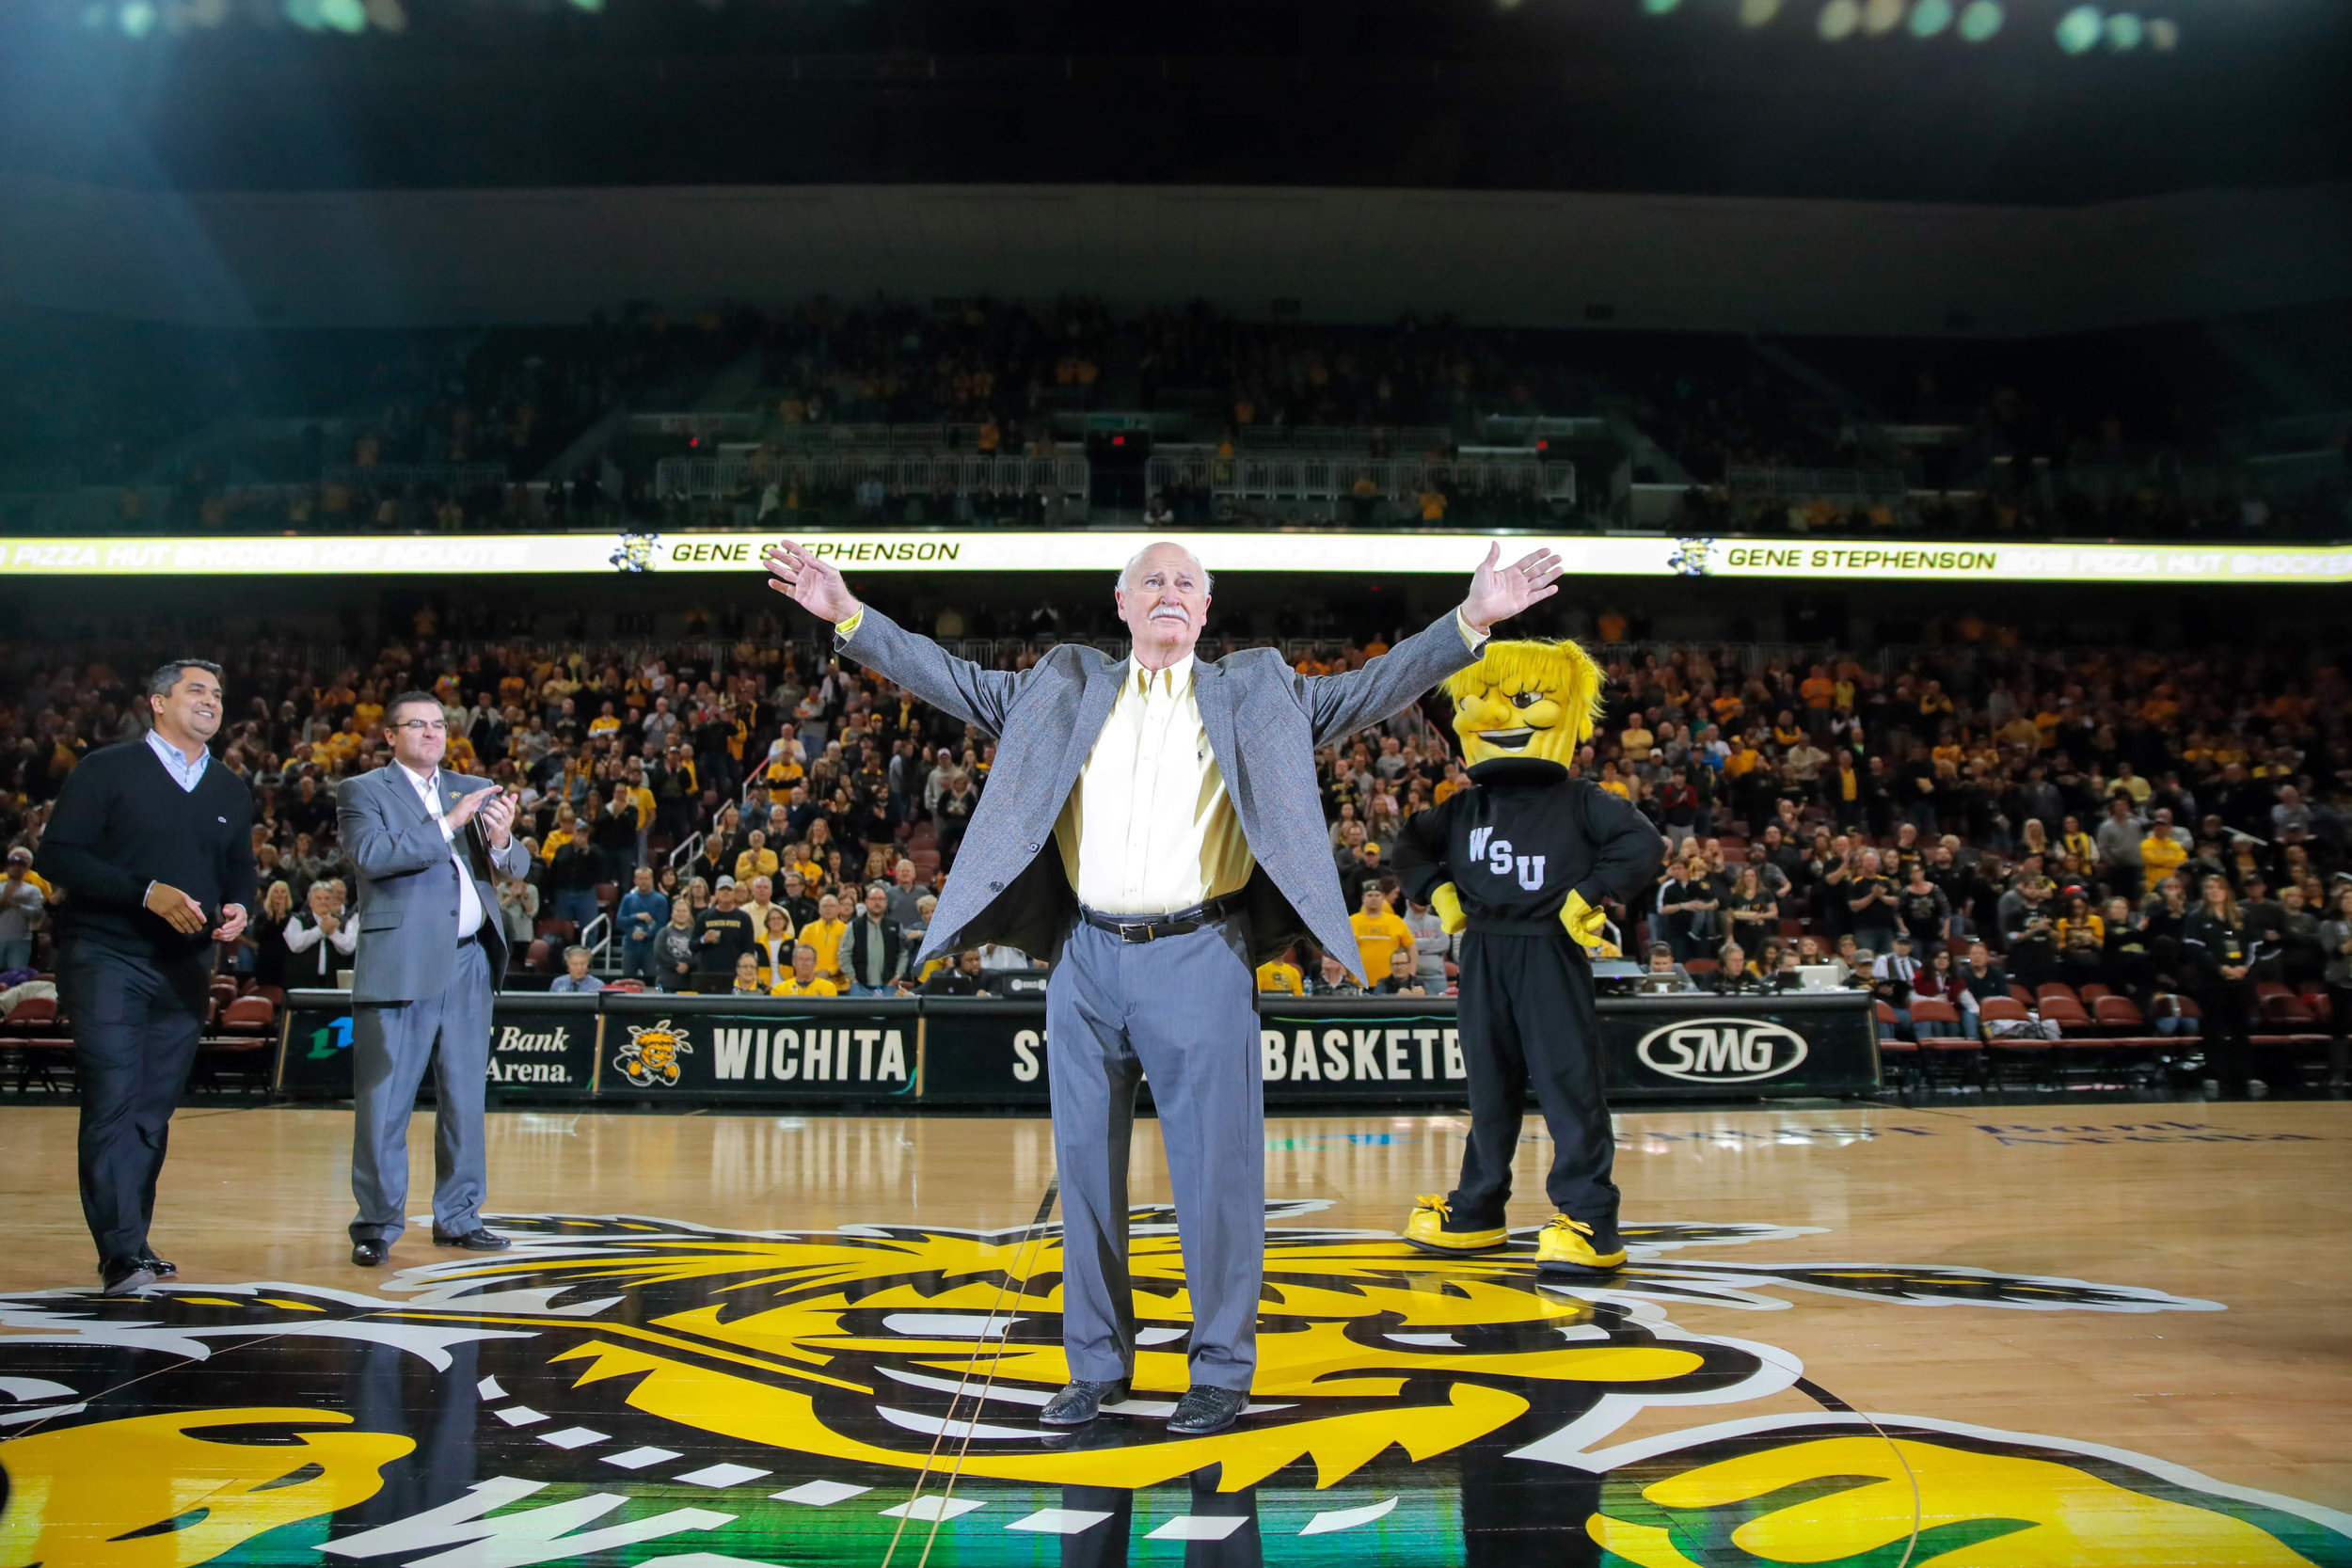 Ex-Wichita State baseball coach Gene Stephenson walks on the court at INTRUST Bank Arena in Wichita, KS. Wichita State inducted Stephenson into the Hall of Fame on Dec. 15, 2018. Stephenson led Wichita State to seven College World Series appearances, and in 1989, WSU won the College World Series.